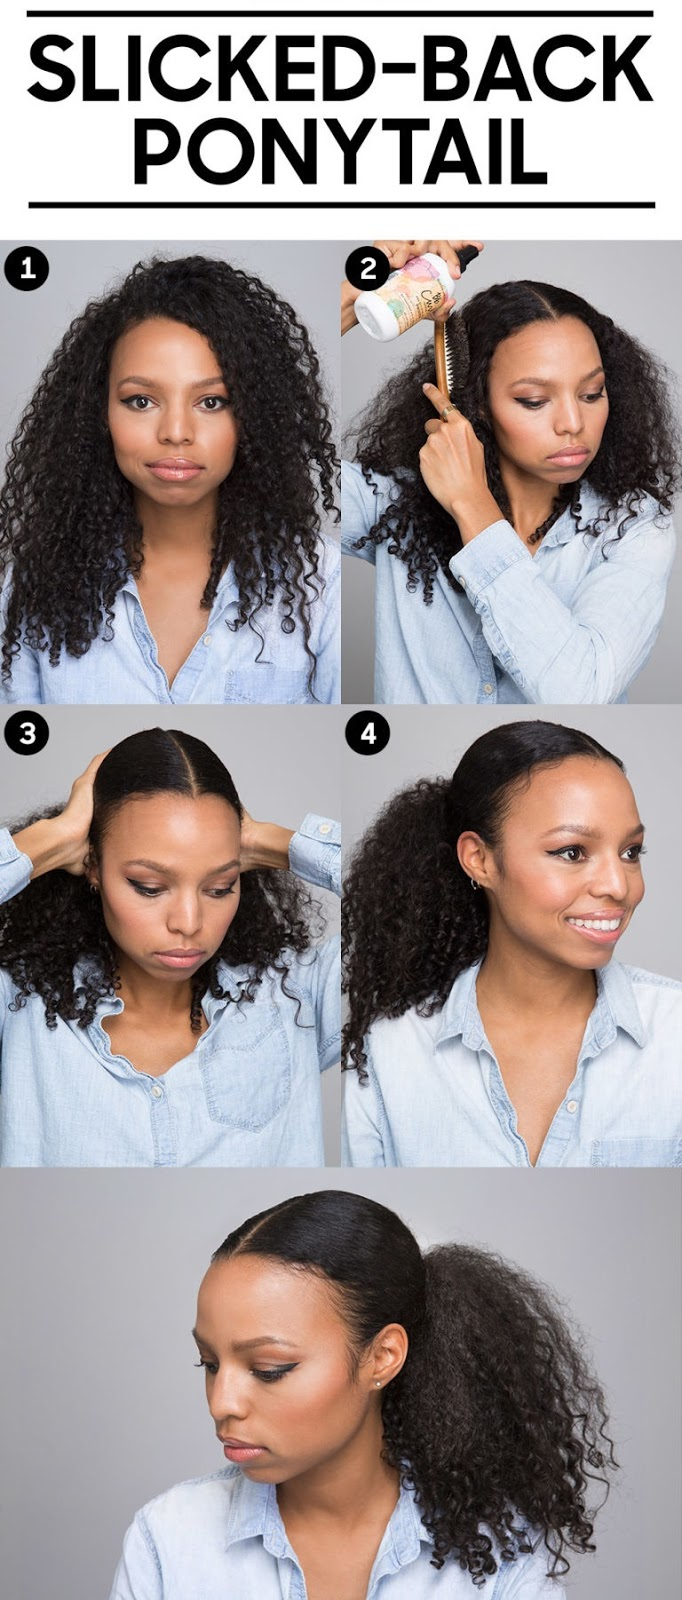 Slicked-back Ponytail for curly hair